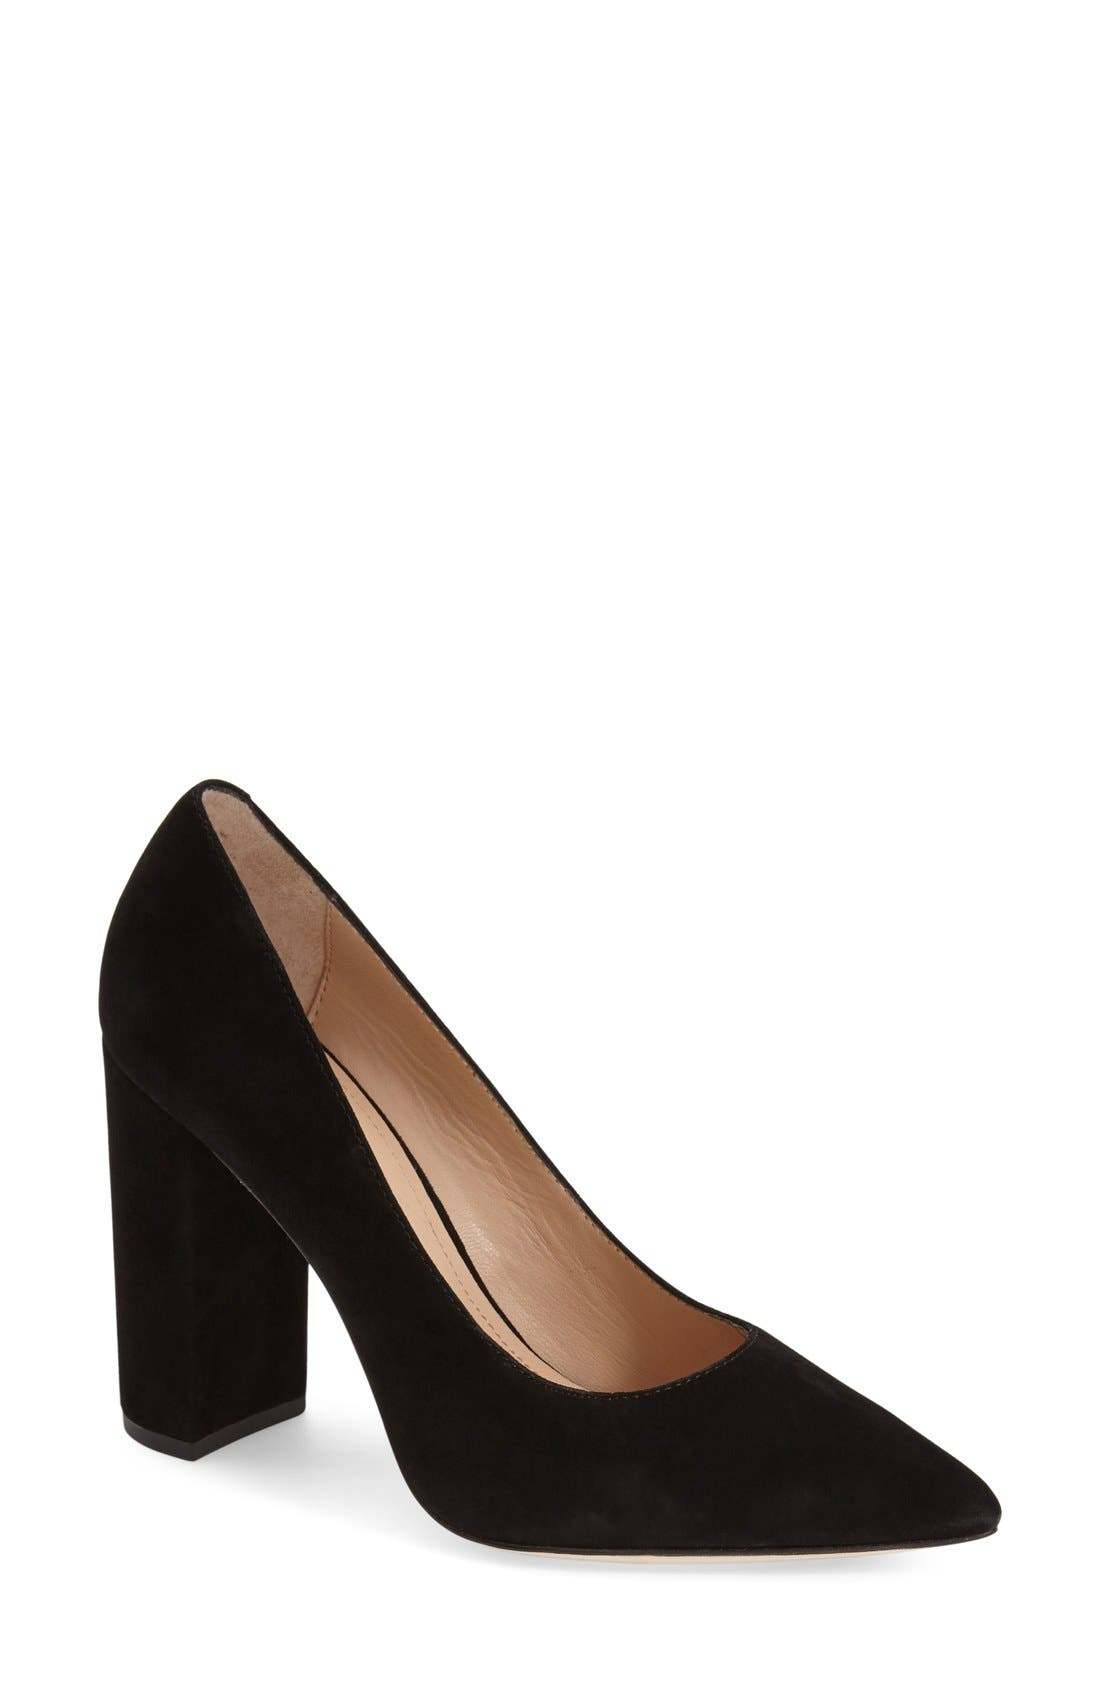 Main Image - Pour la Victoire 'Celina' Pointy Toe Pump (Women)